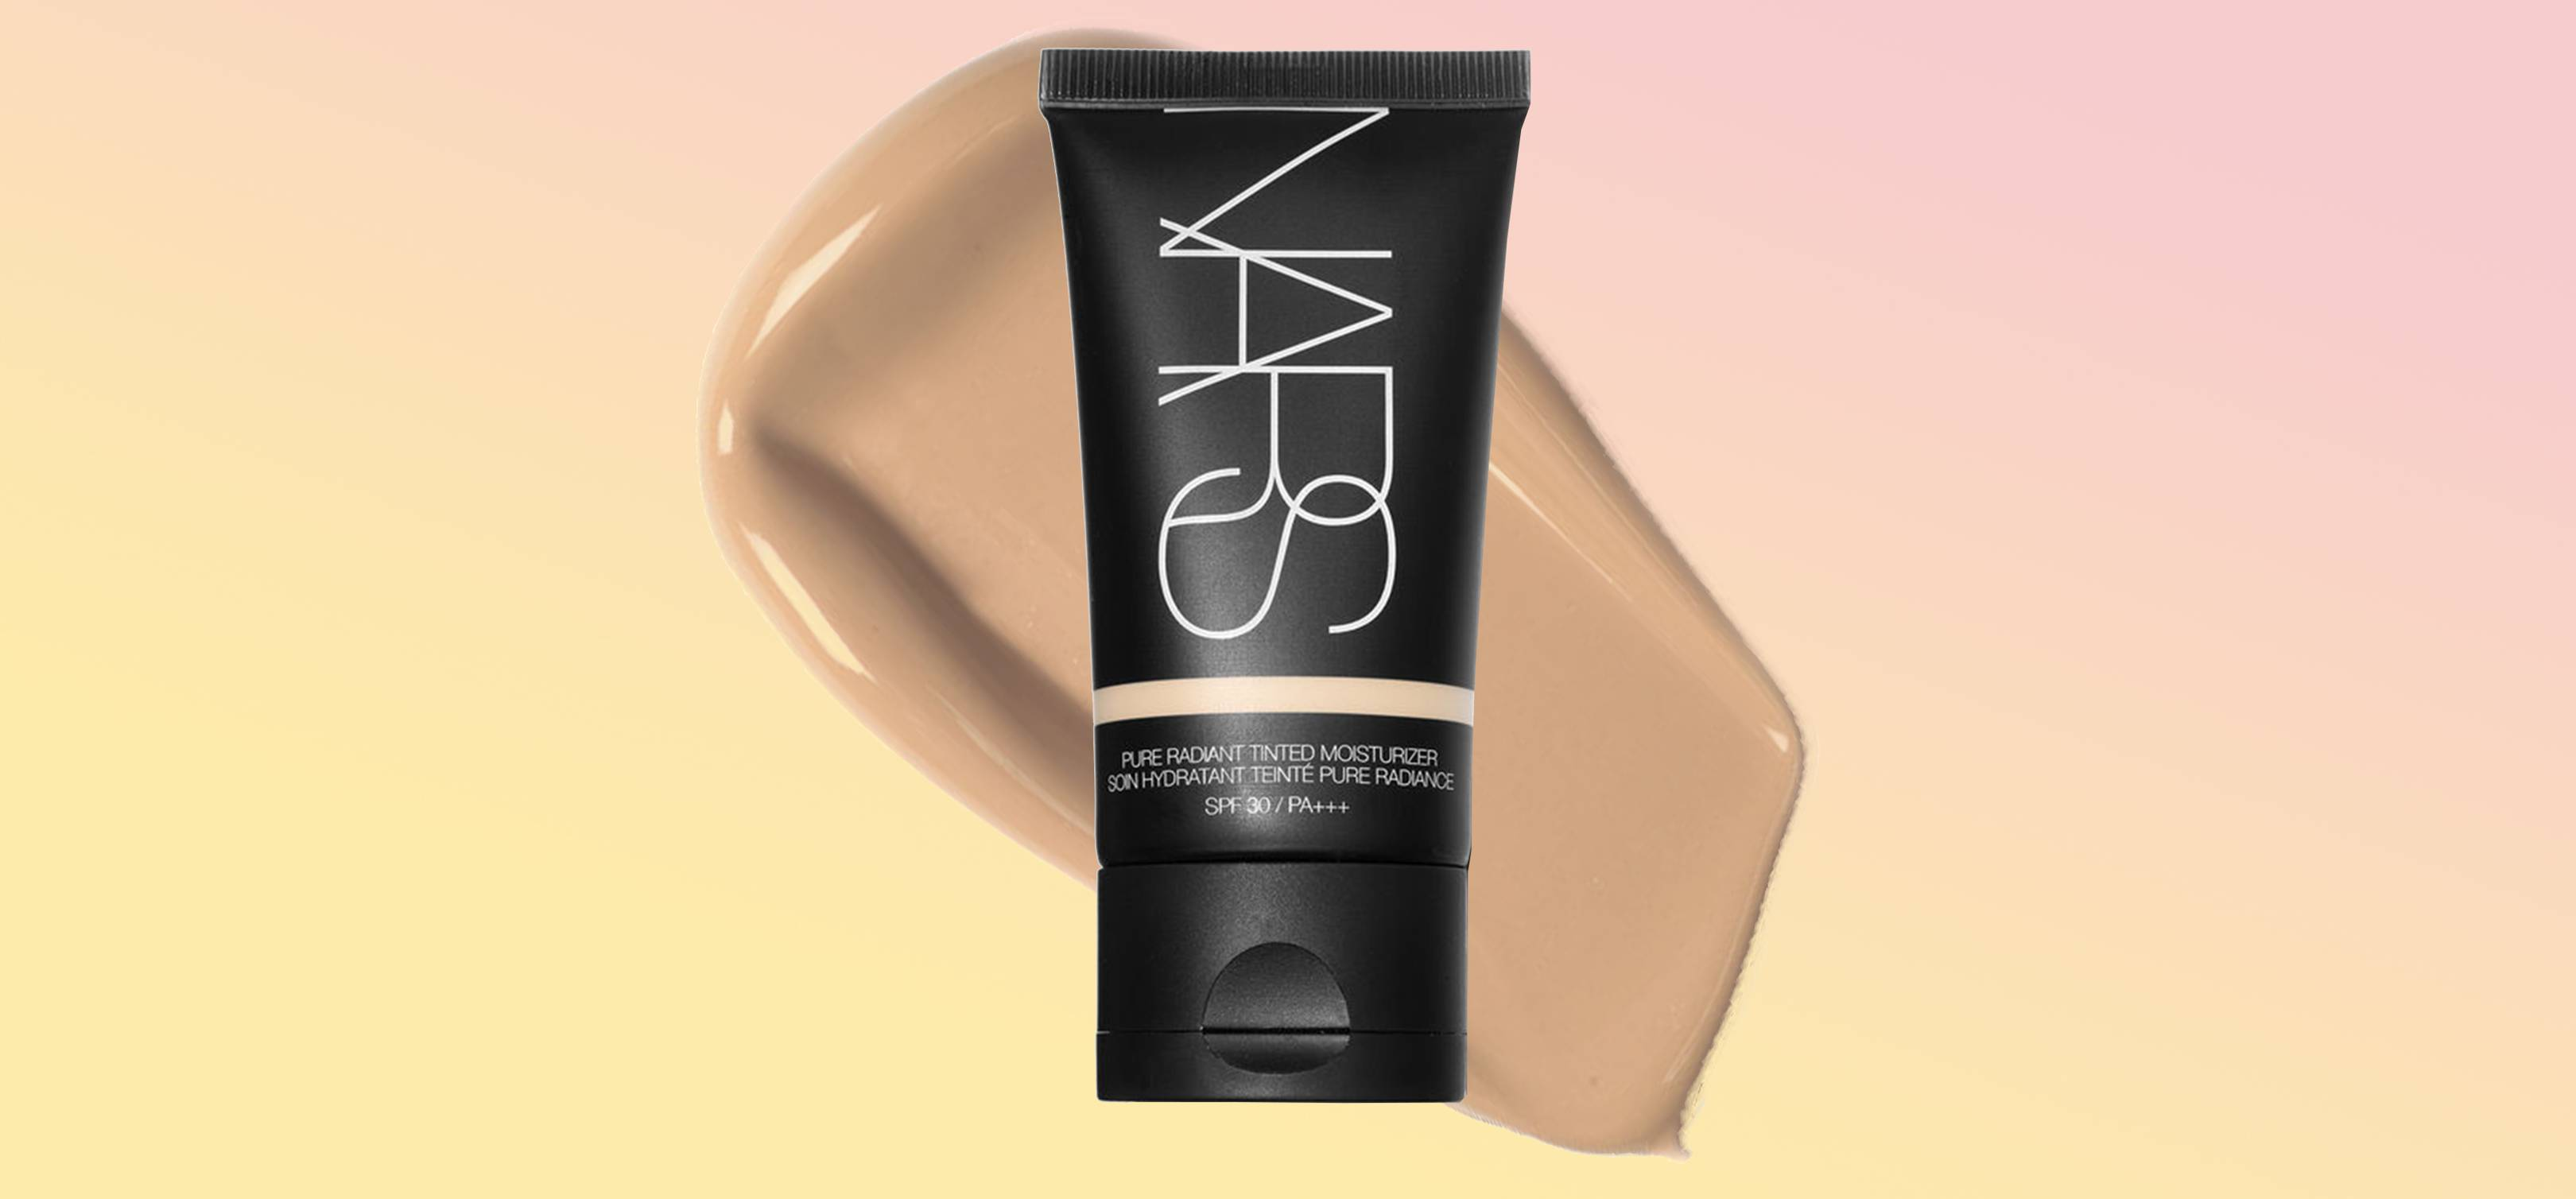 Every Celebrity Makeup Artist Swears By A Tinted Moisturiser For The Perfect Base Here Are Best Ones